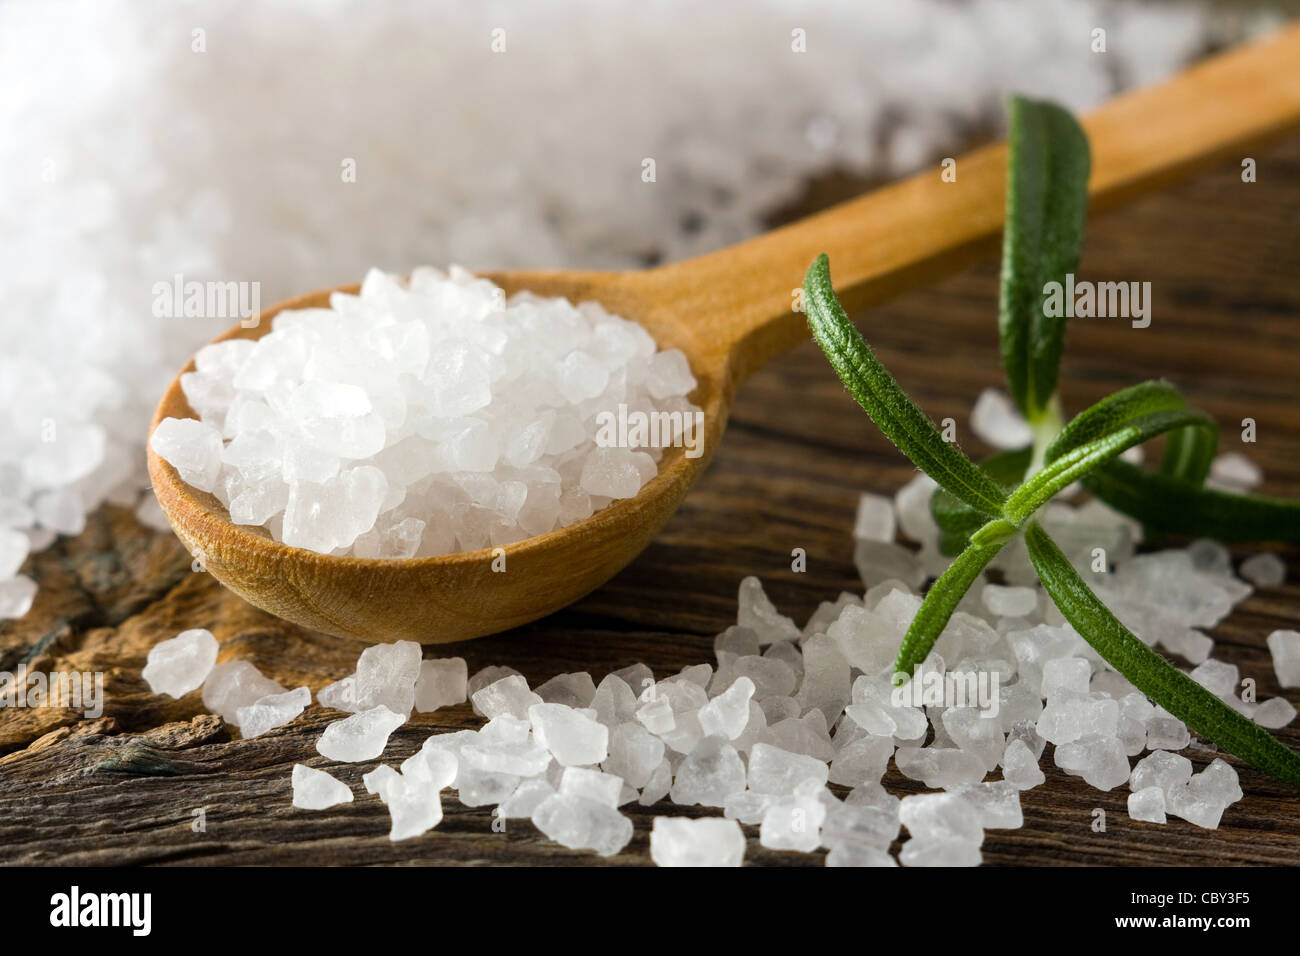 Sea salt on wooden spoon - Stock Image